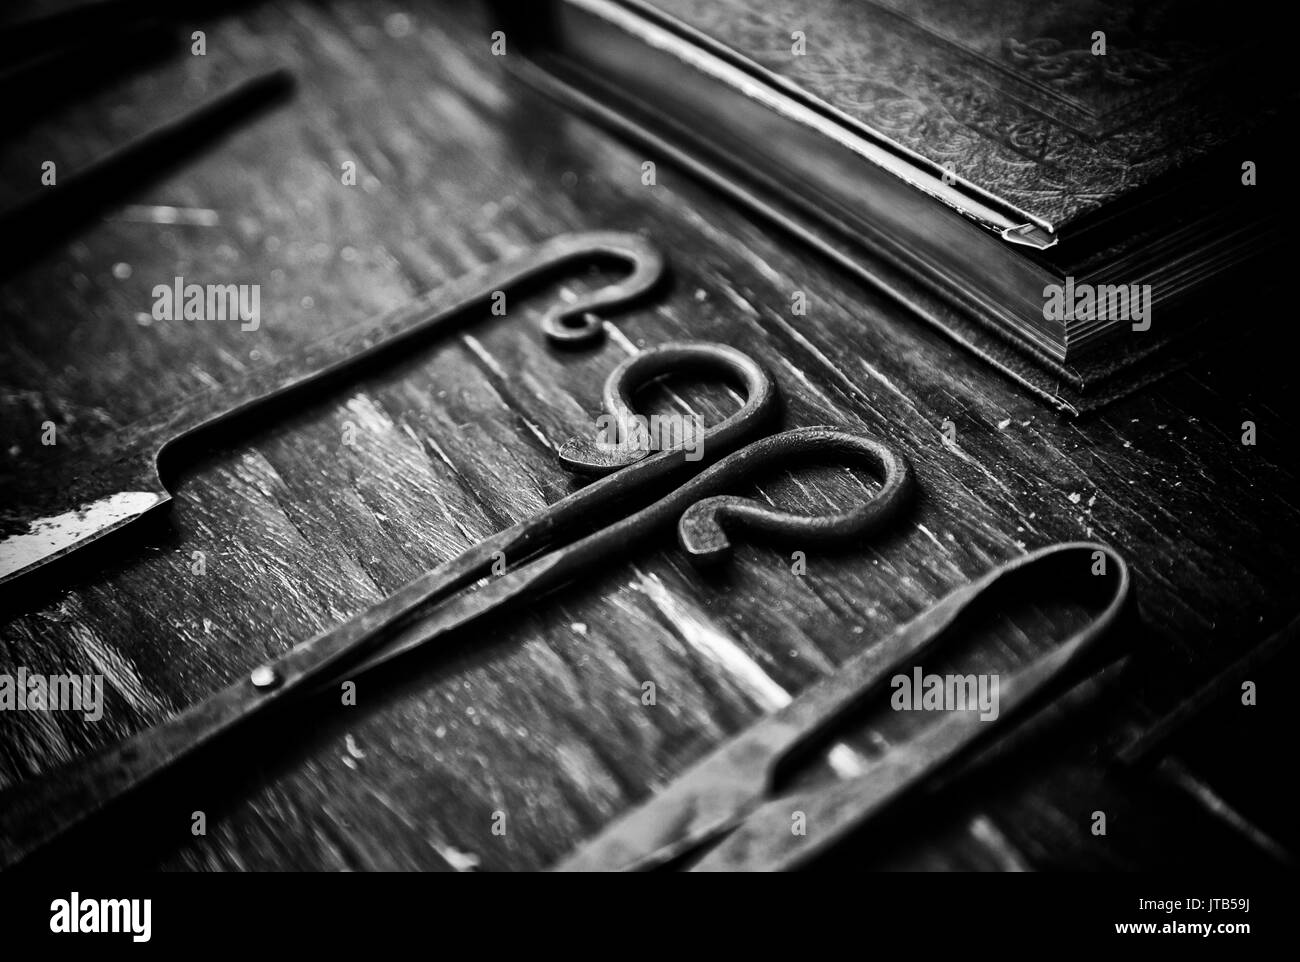 Skin care tool, detail of objects to work the skin, traditional crafts - Stock Image